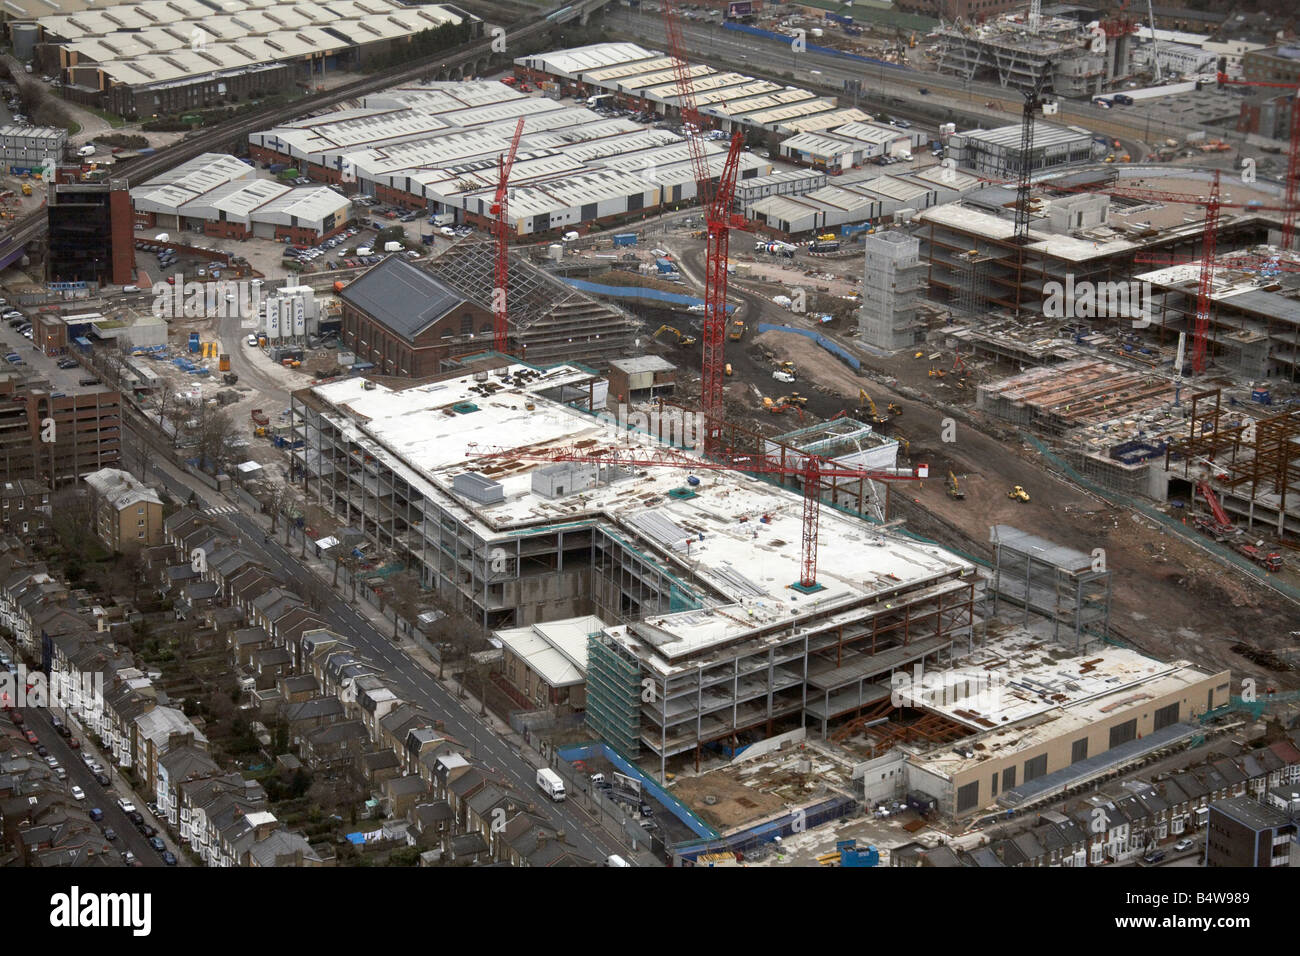 Aerial view north east of Westfield White City Development Construction Site suburban houses Wood Lane London W12 Stock Photo